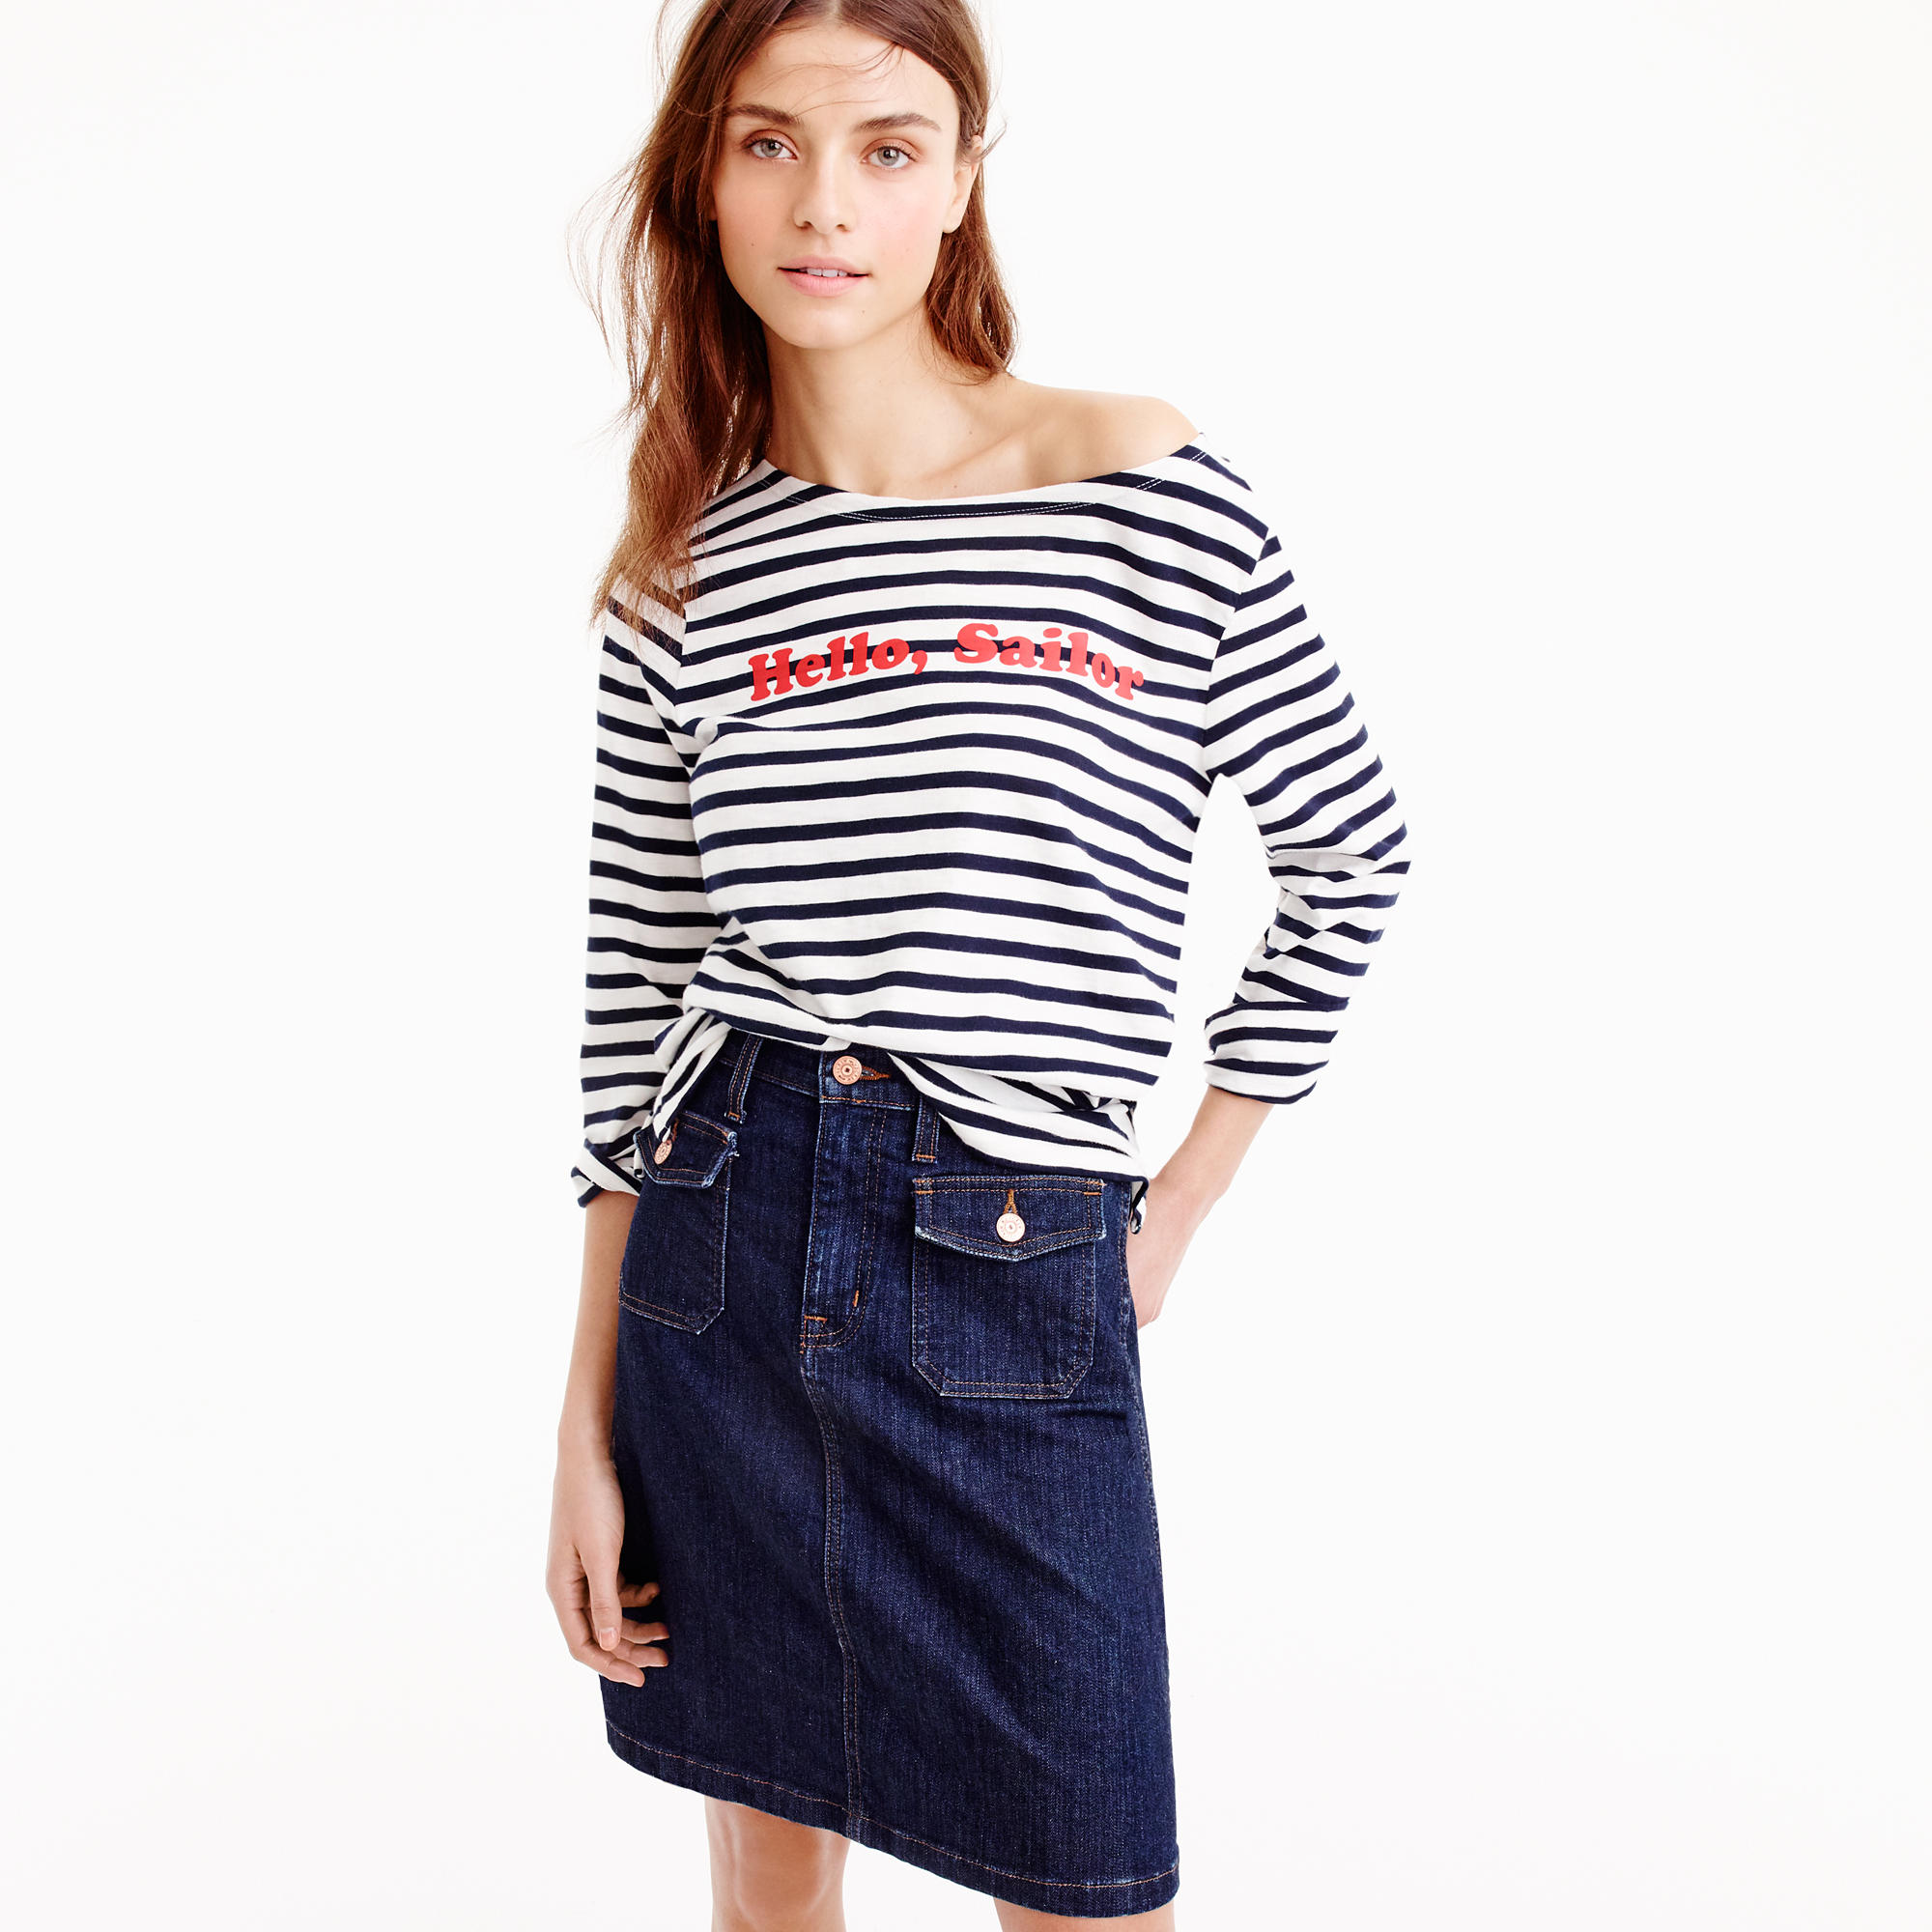 Women's T-Shirts & Tank Tops | J.Crew